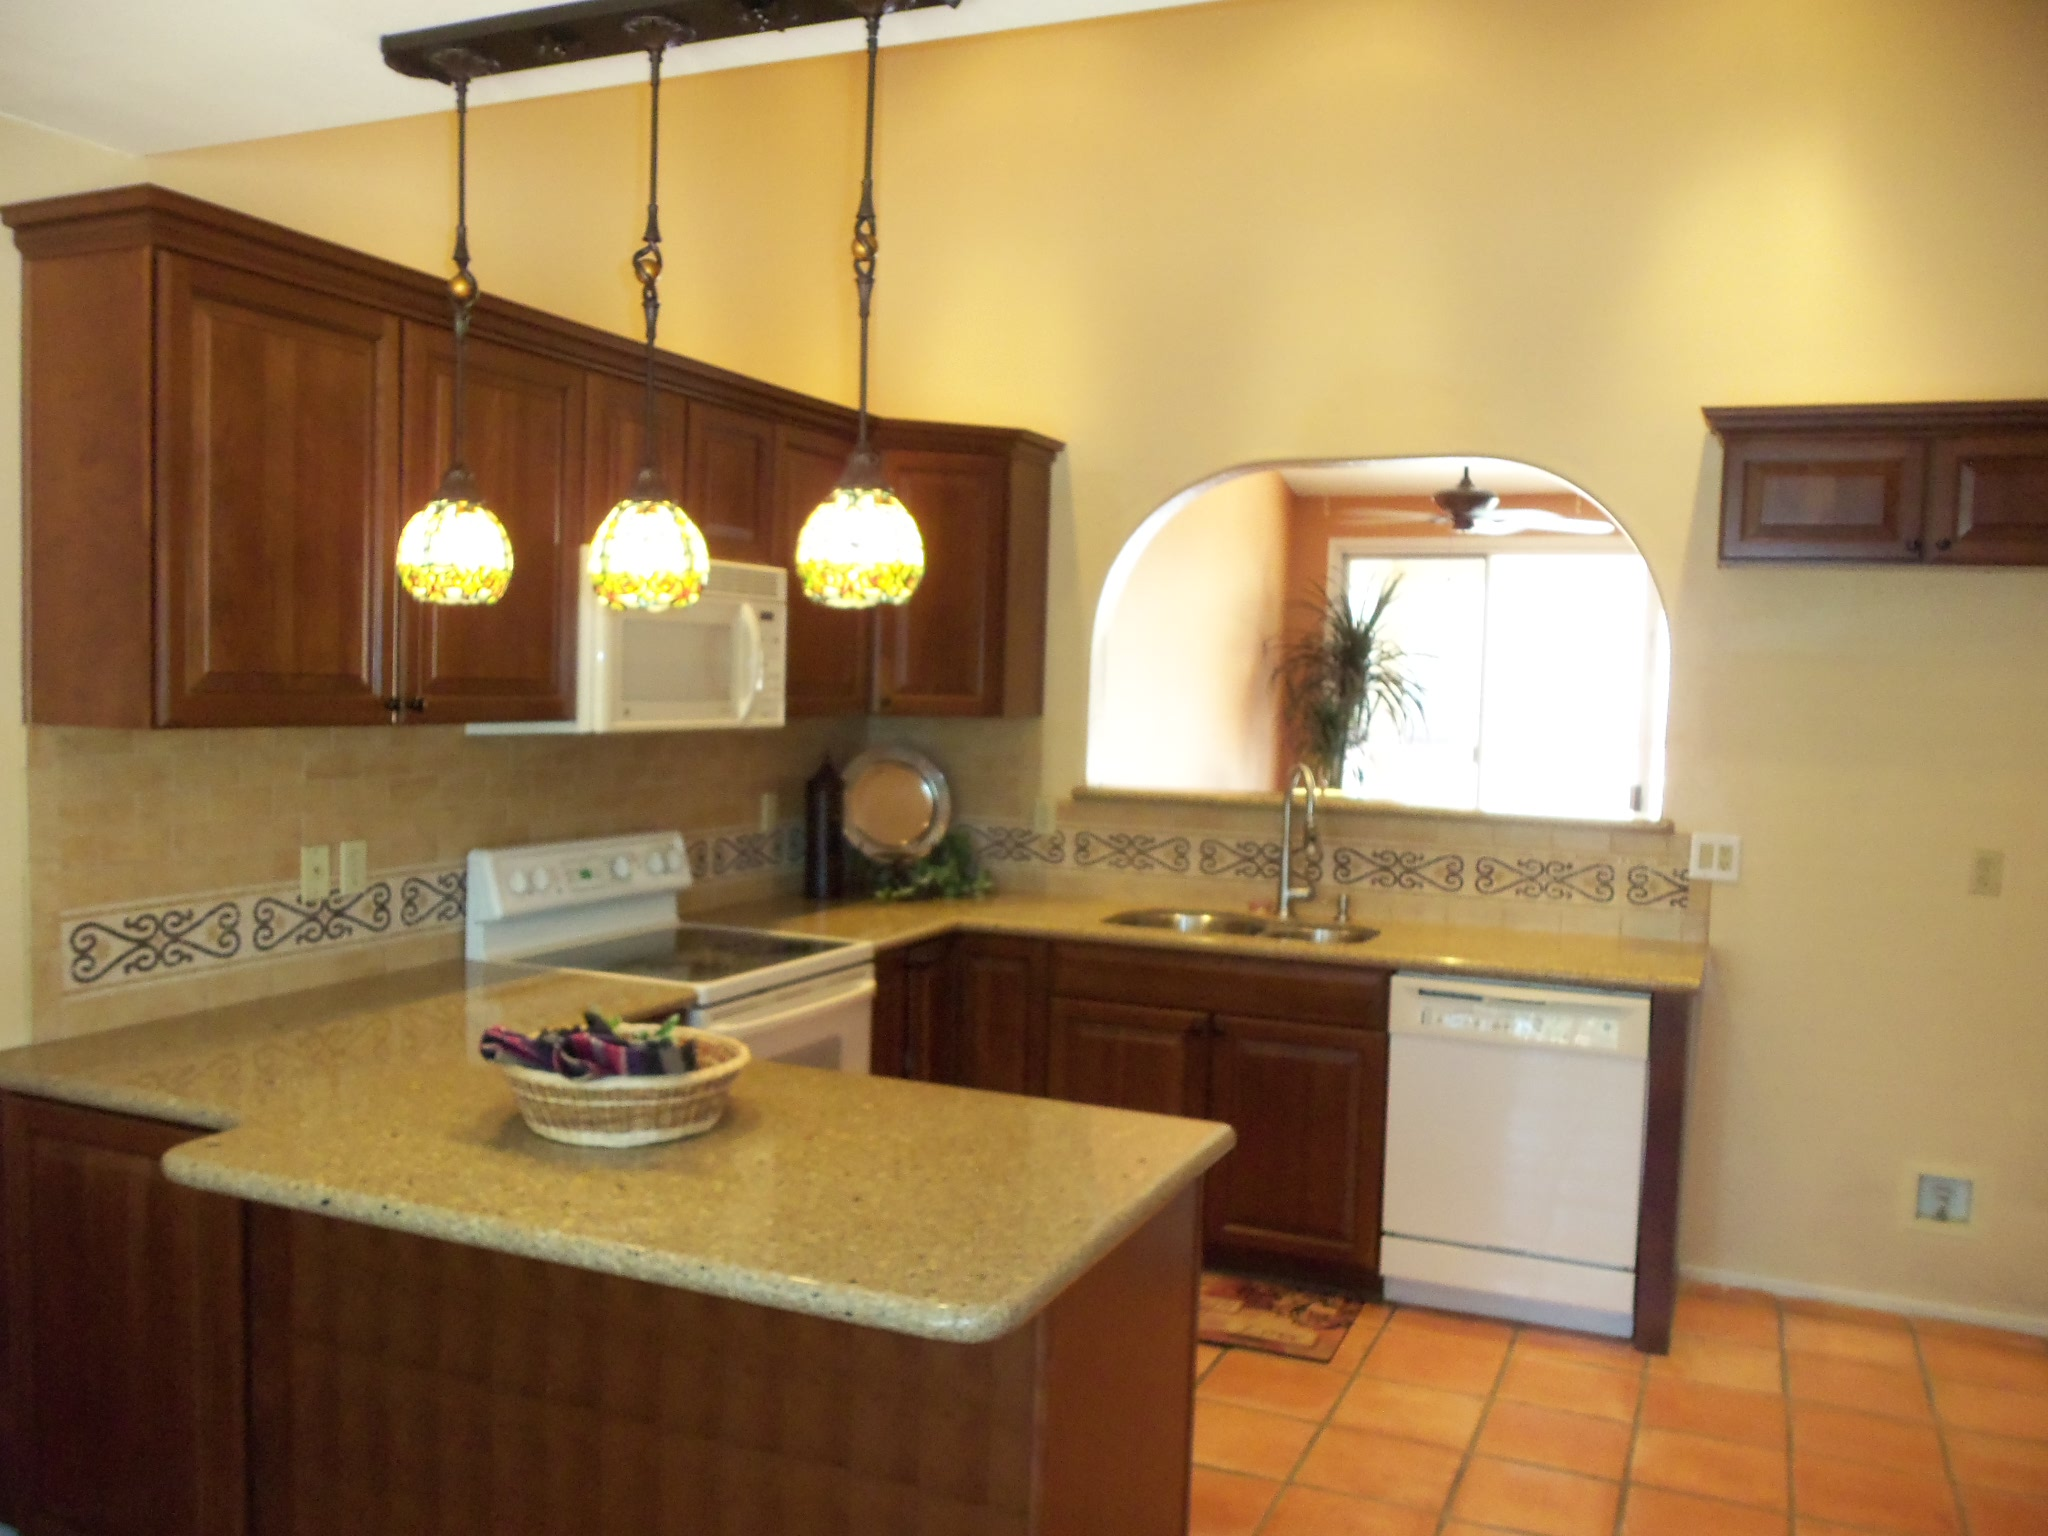 Fountain hills bank owned home the sonoran life style for Kitchen upgrades